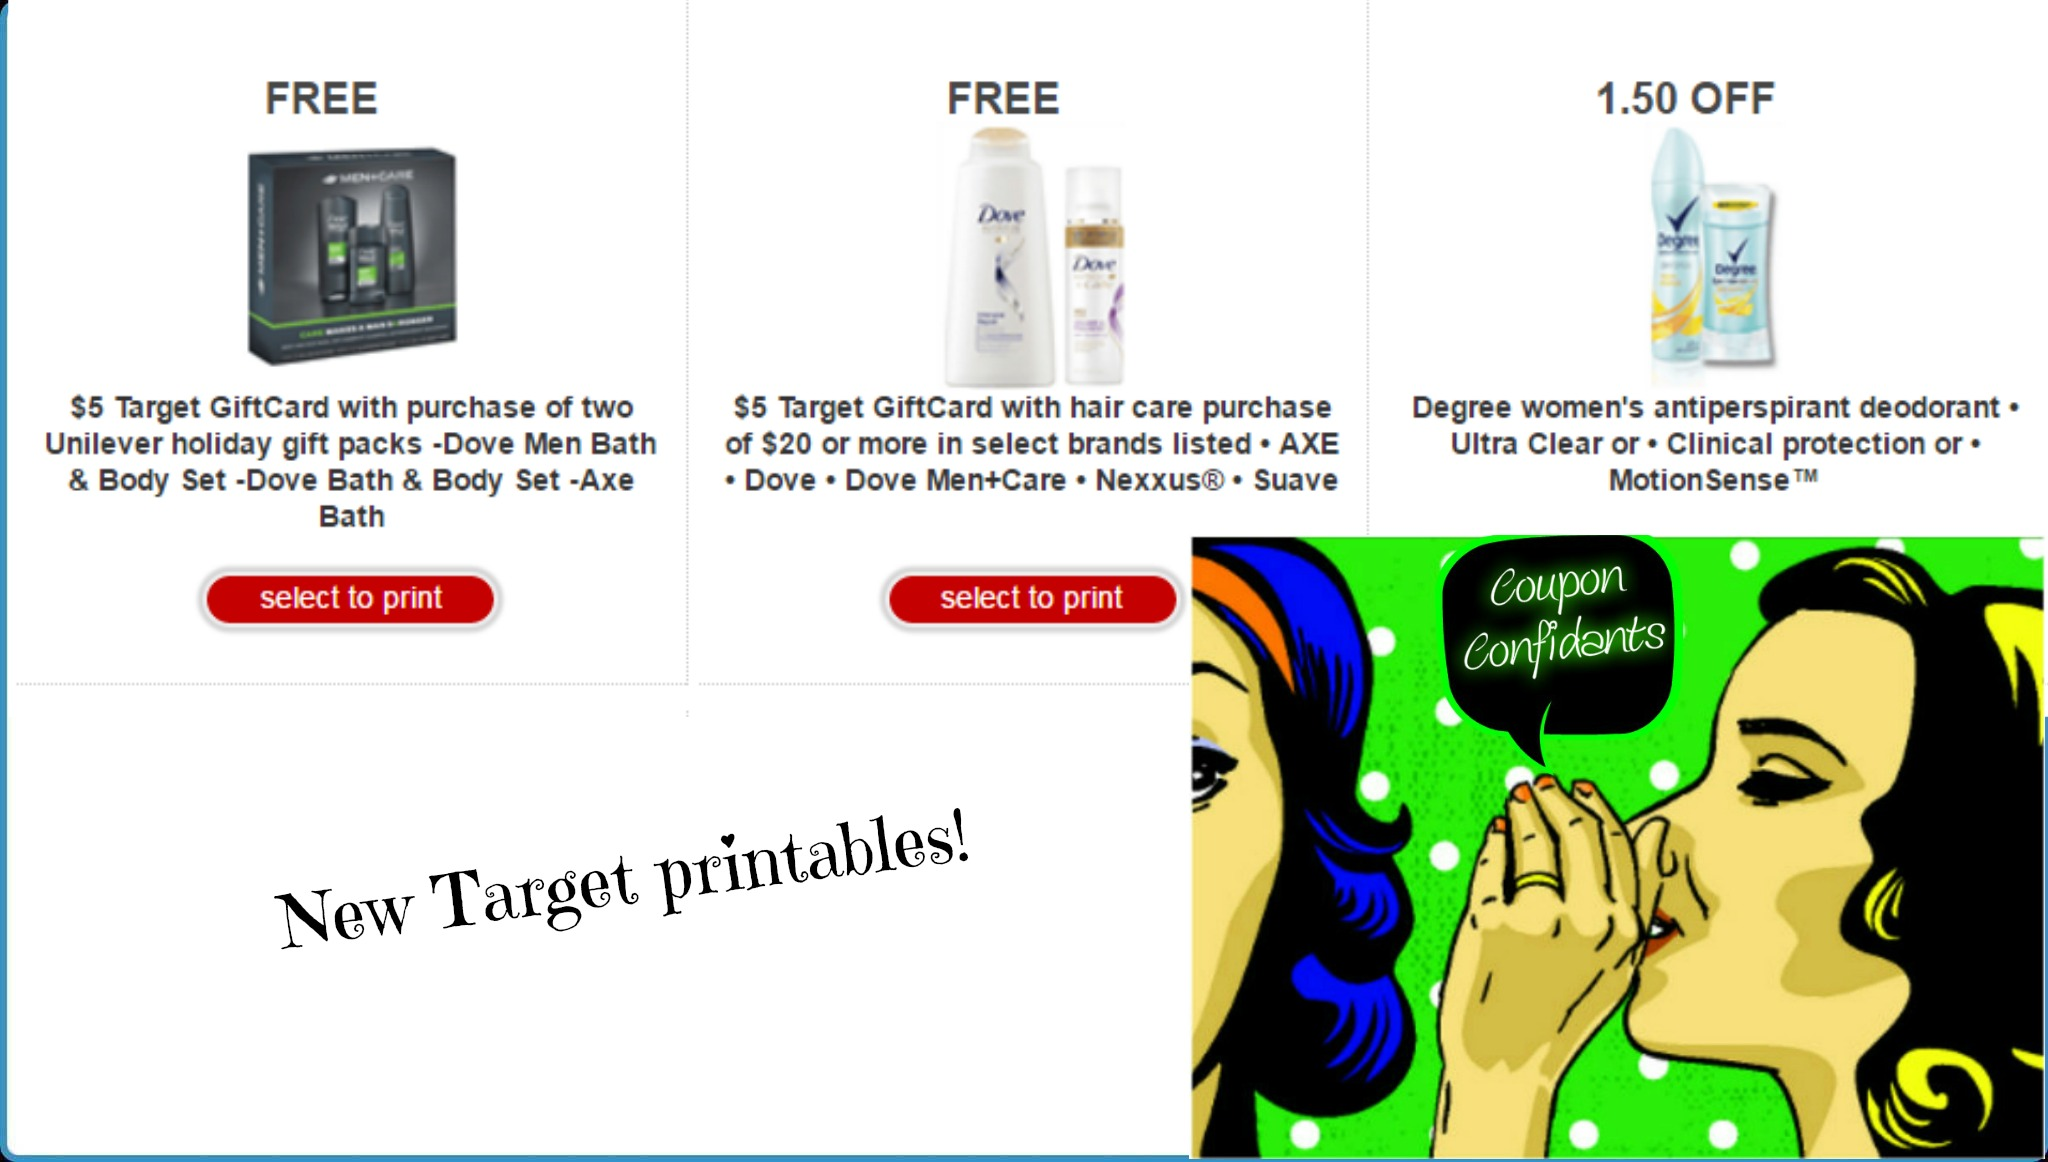 image about Unilever Printable Coupons identify 3 Incredibly hot fresh Emphasis printable discount codes! ⋆ Coupon Confidants